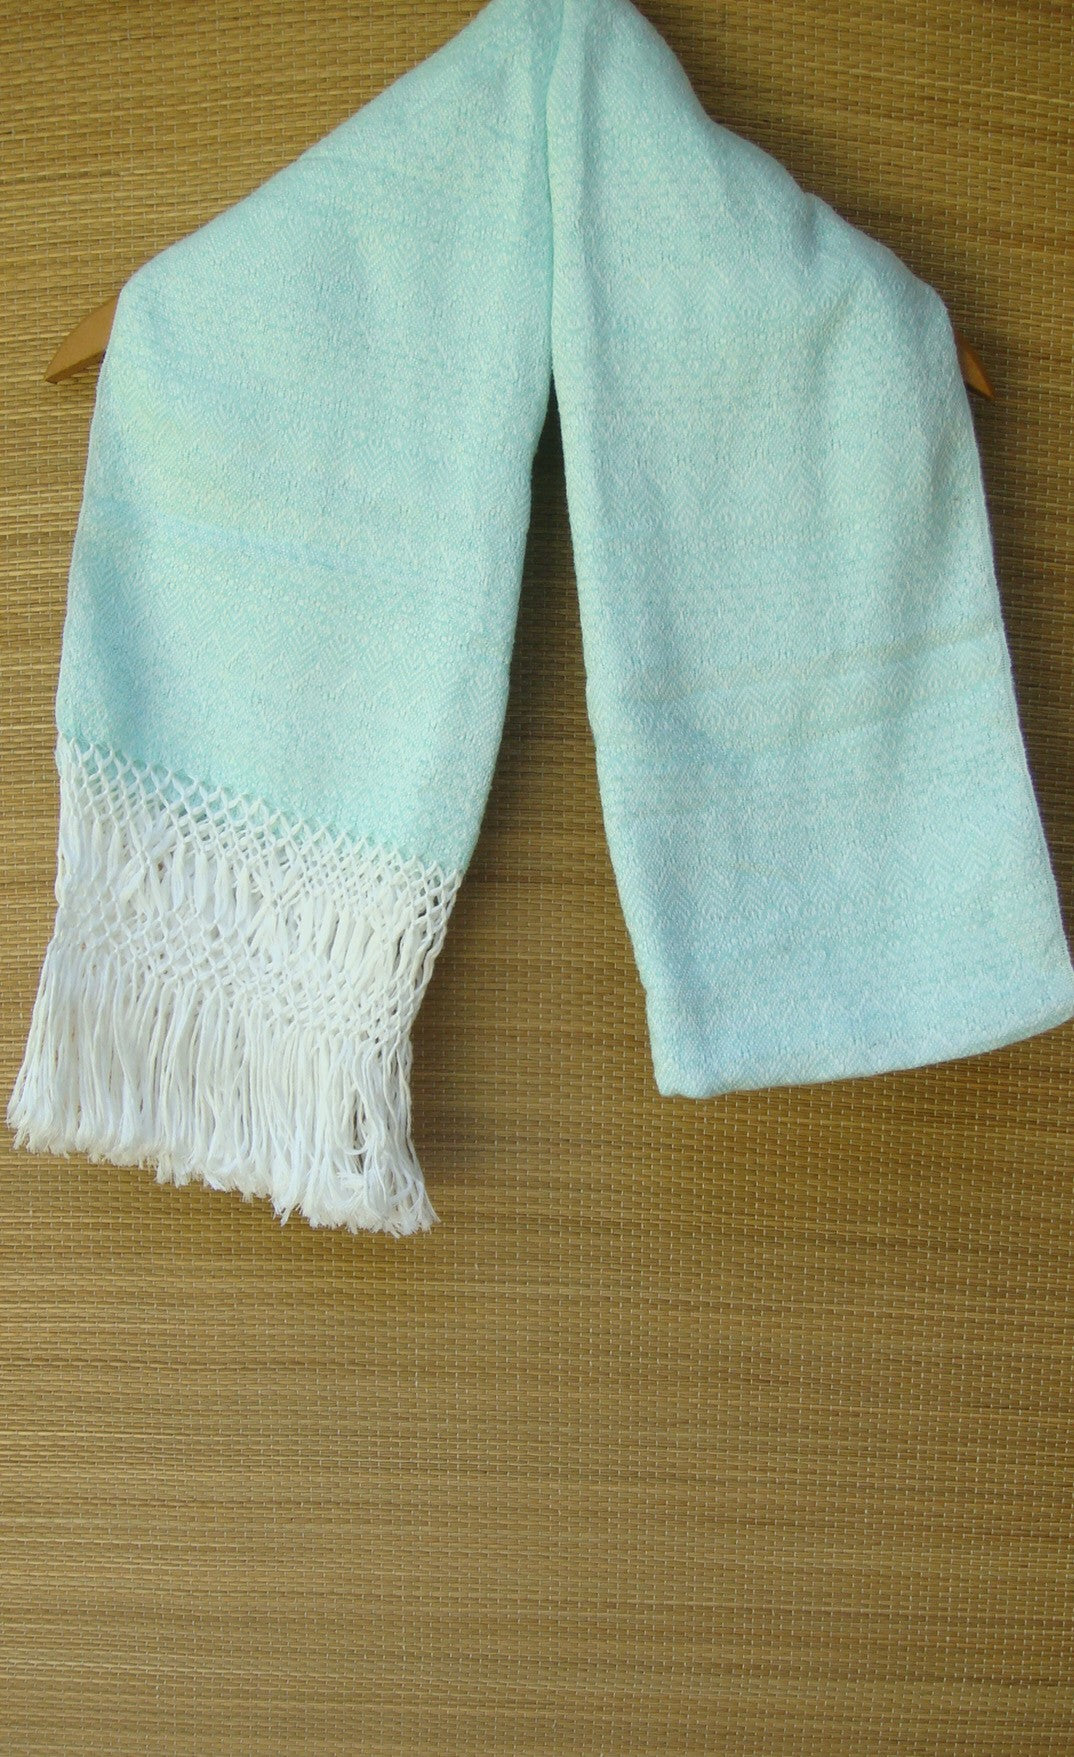 Blue Green and White Mexican Rebozo Shawl with Fringes Embroidered with Cotton and Yarn